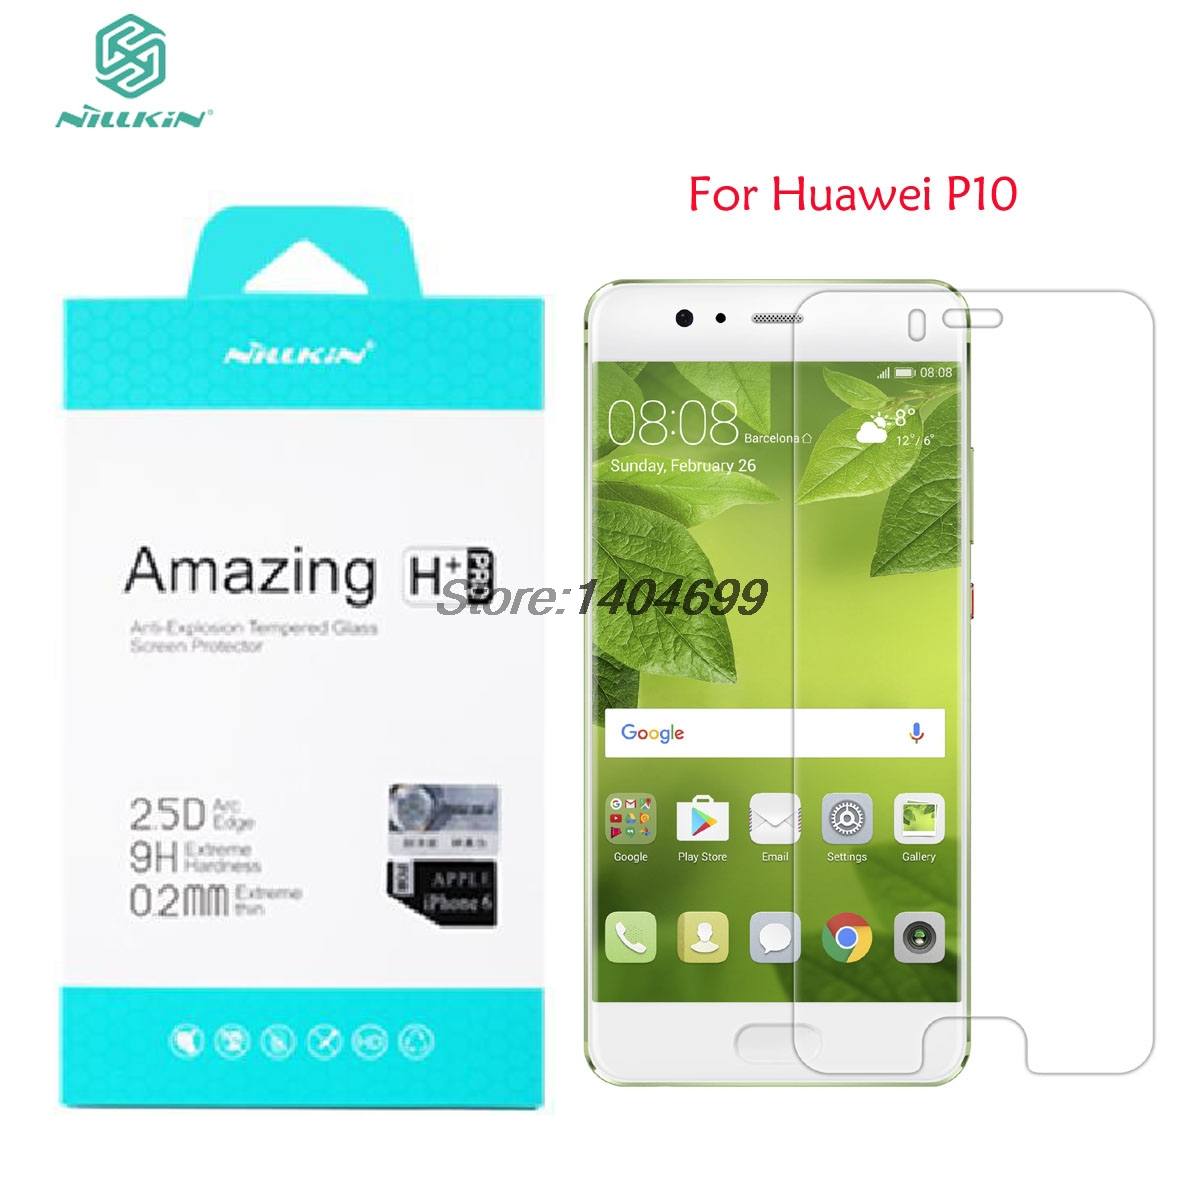 Huawei P10 Tempered Glass Nillkin Amazing H+PRO 9H 0.2mm 2.5D Screen Protector Glass For Huawei P10 5.1 PhoneHuawei P10 Tempered Glass Nillkin Amazing H+PRO 9H 0.2mm 2.5D Screen Protector Glass For Huawei P10 5.1 Phone